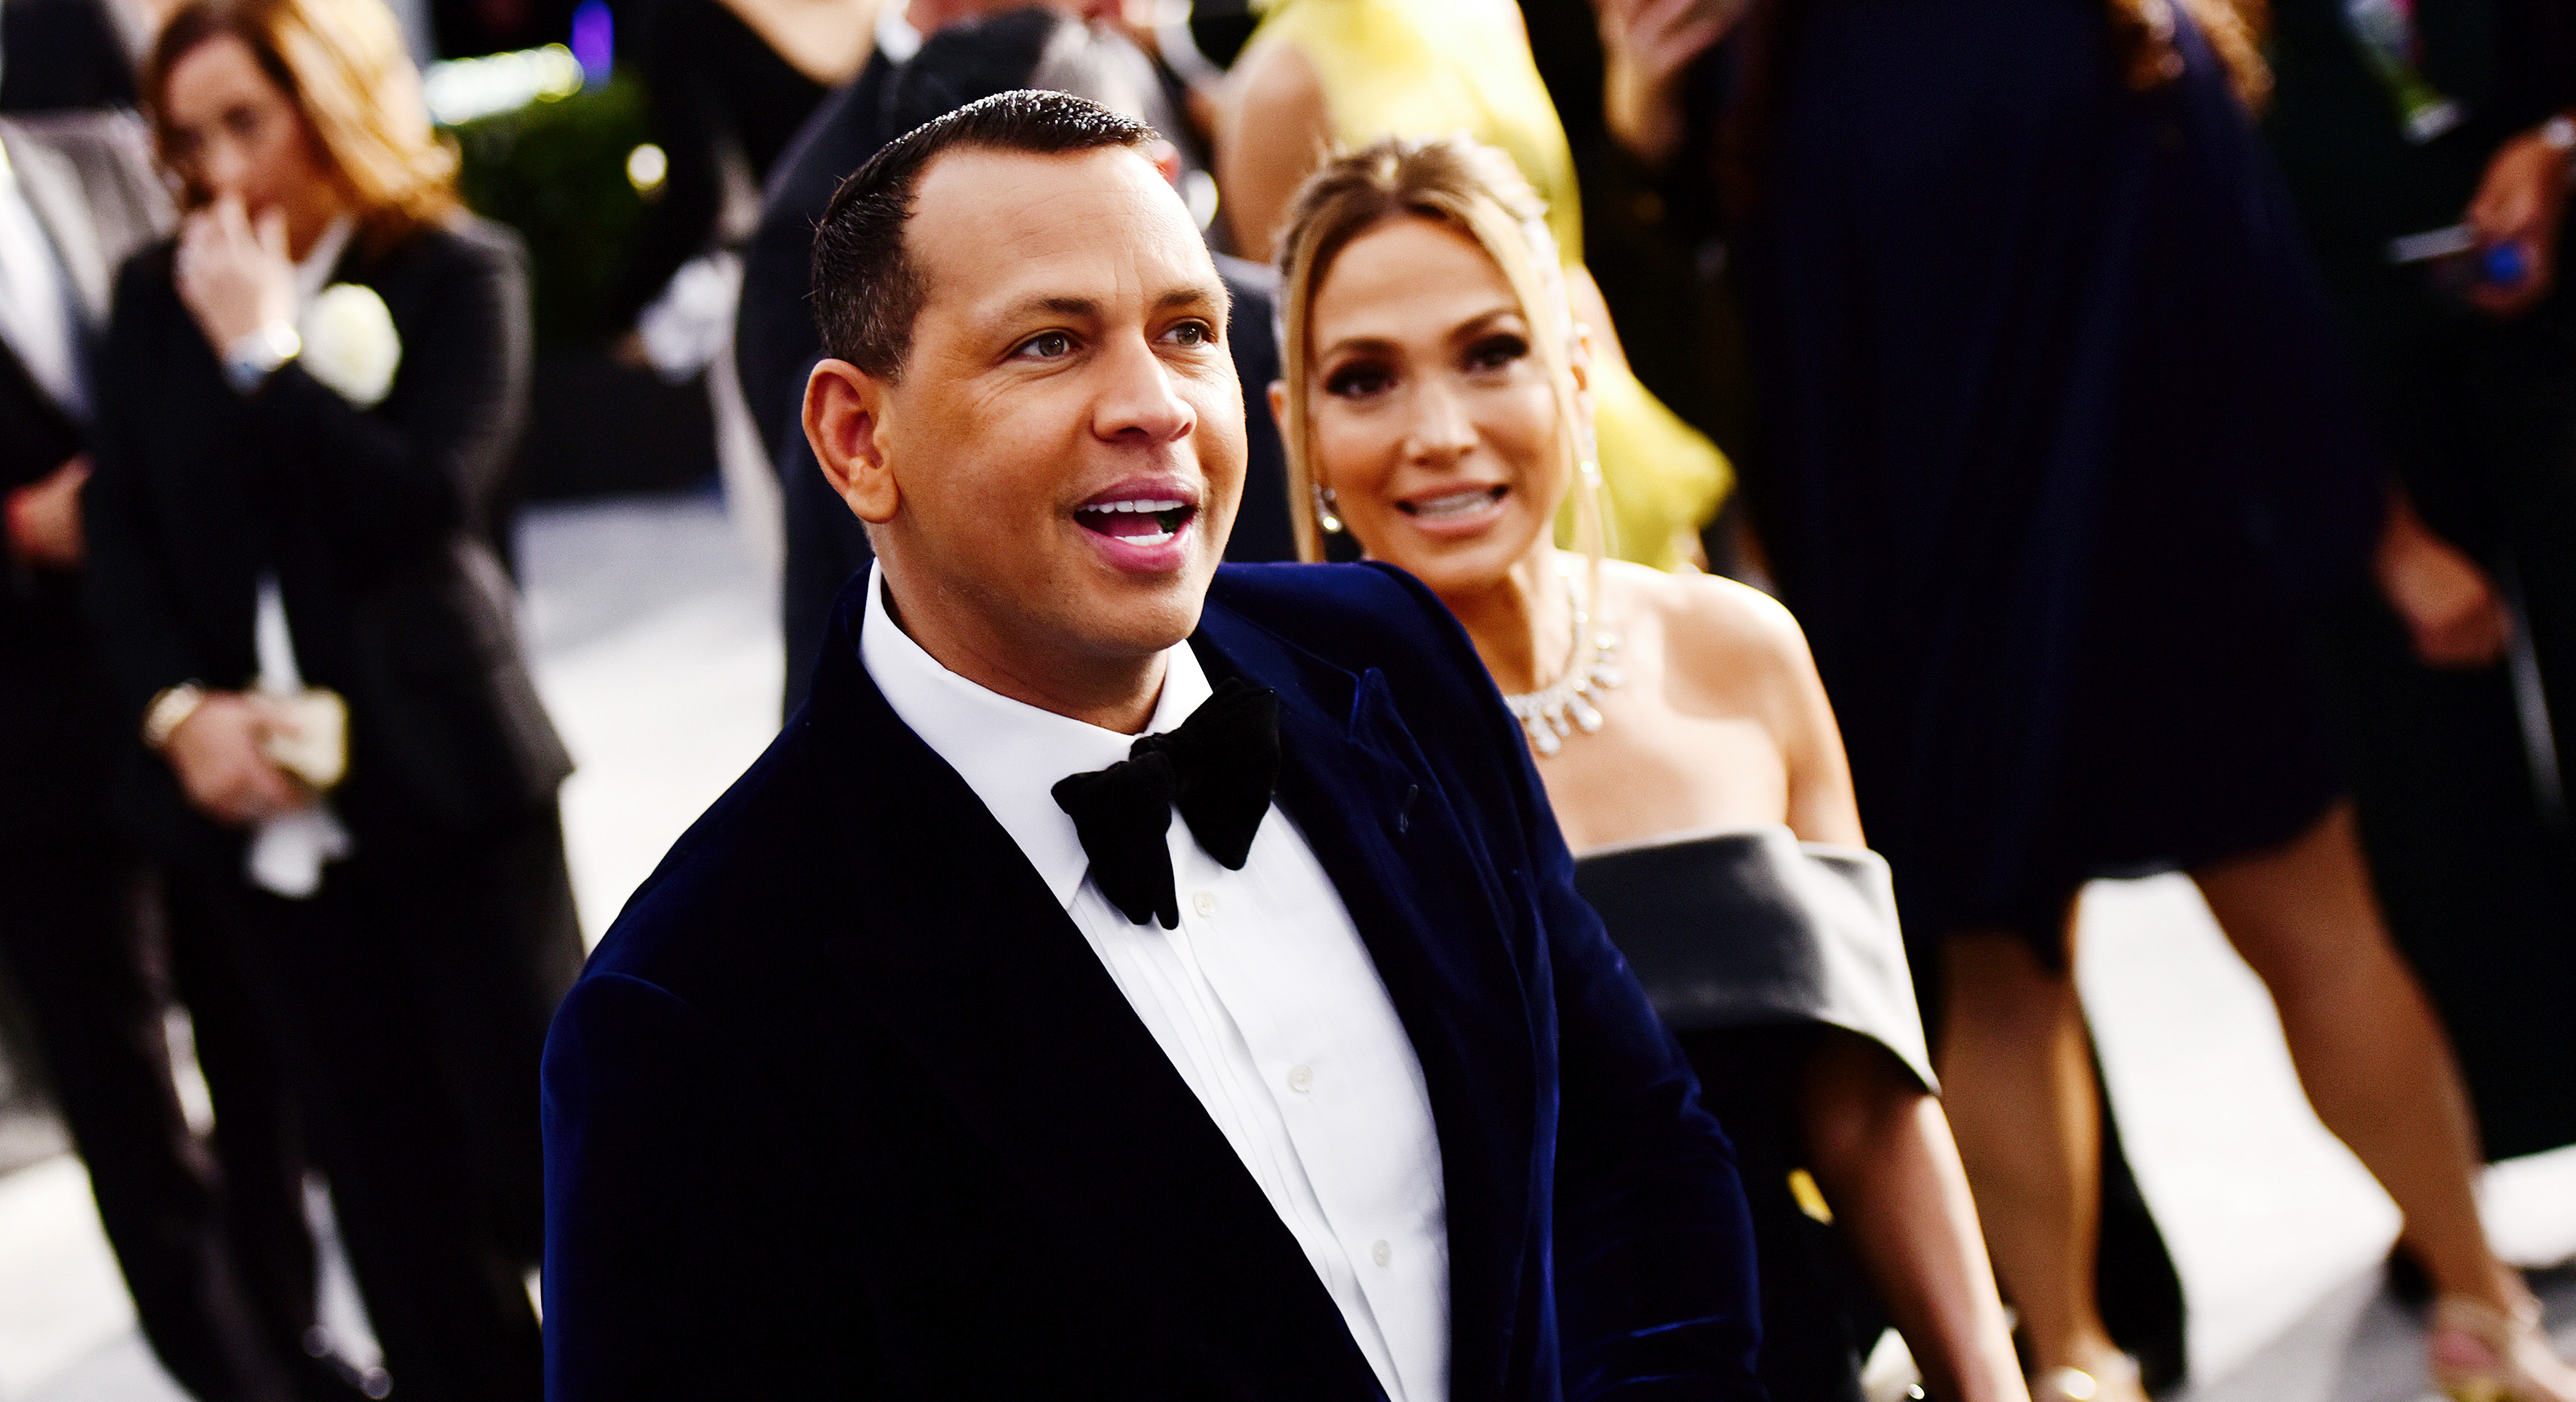 From BX to Queens: JLo & A-Rod Could Own The NY Mets Soon